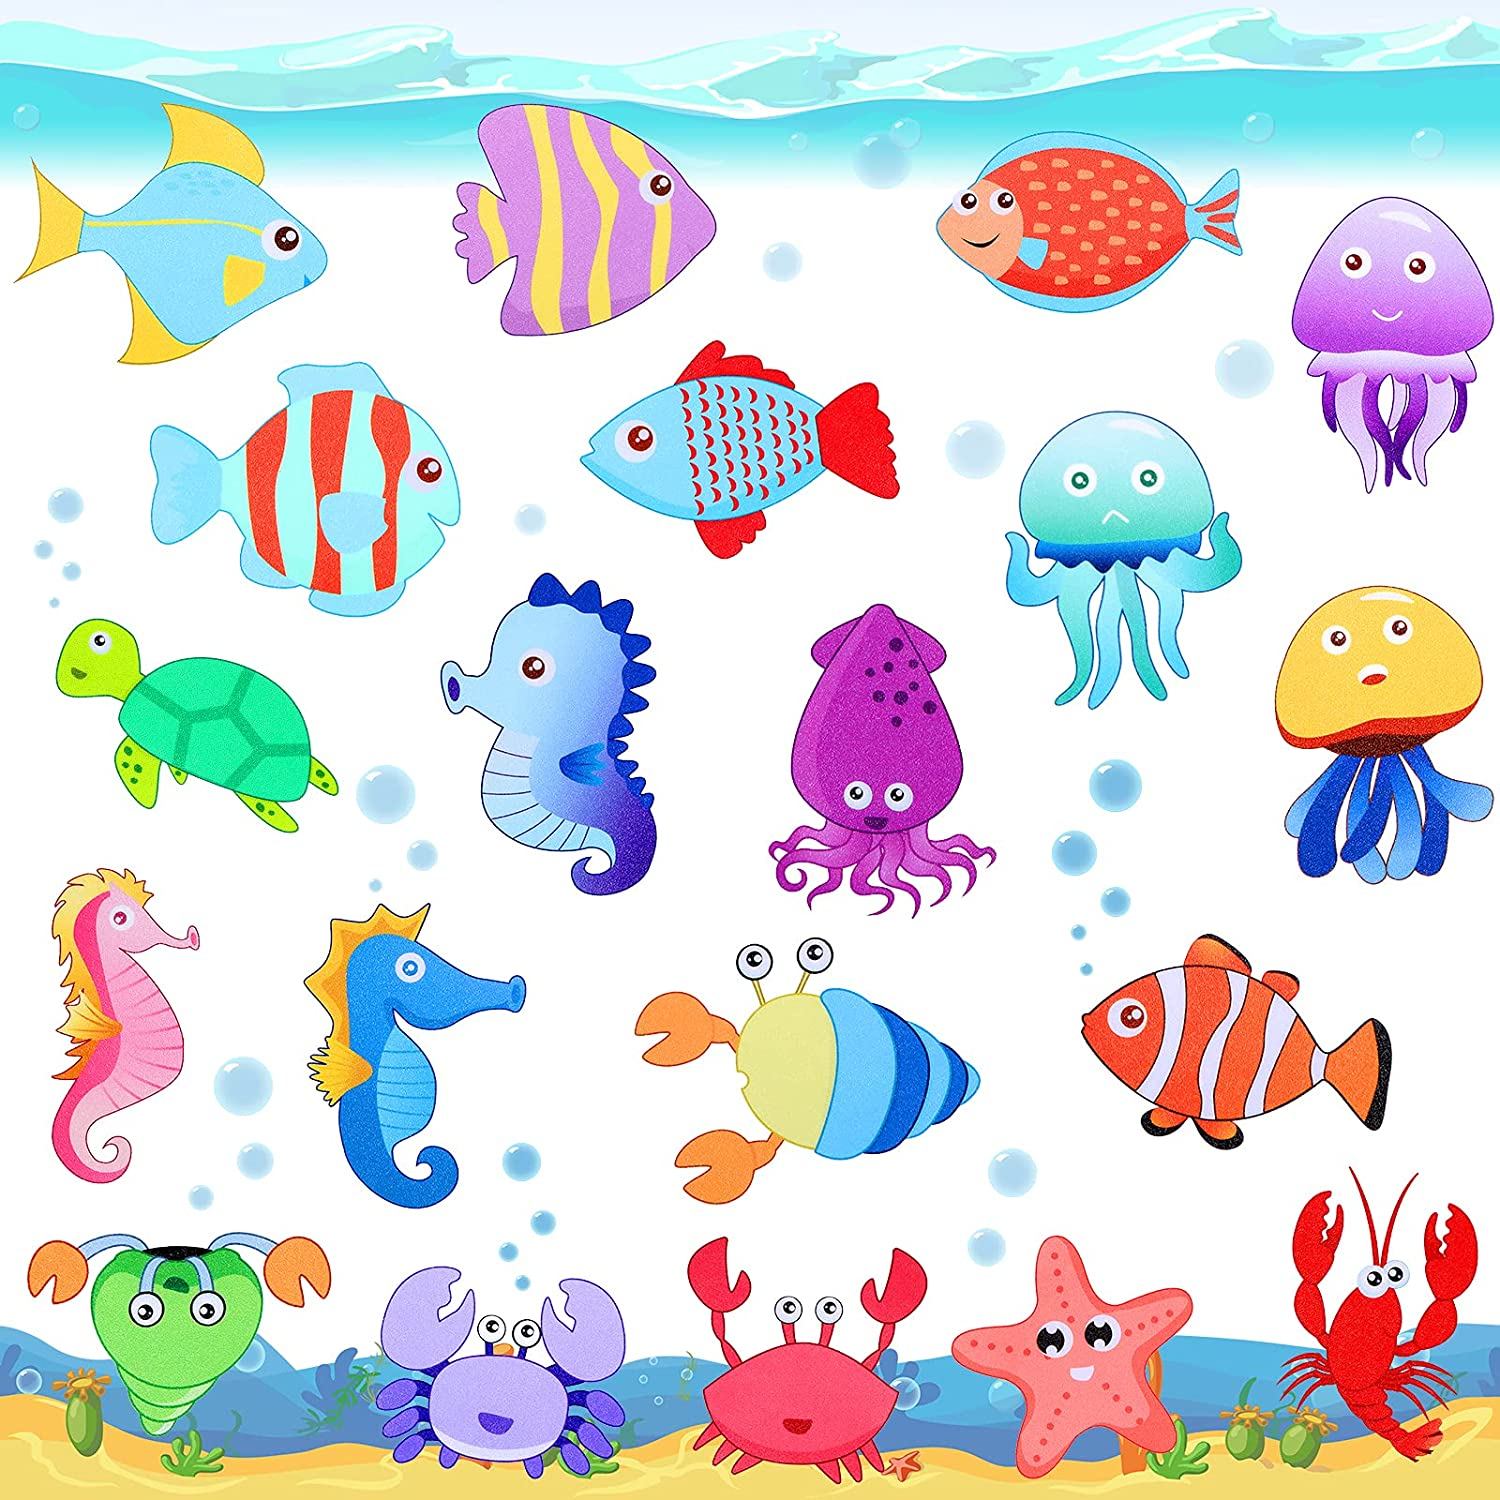 Decorative Fish Wall Decals for Kids and Toddlers, Ocean Under The Sea Wall Sticker Decor Removable Waterproof Cute Wall Stickers for Bathrooms Tubs Bedrooms Children's Classrooms Water Cups